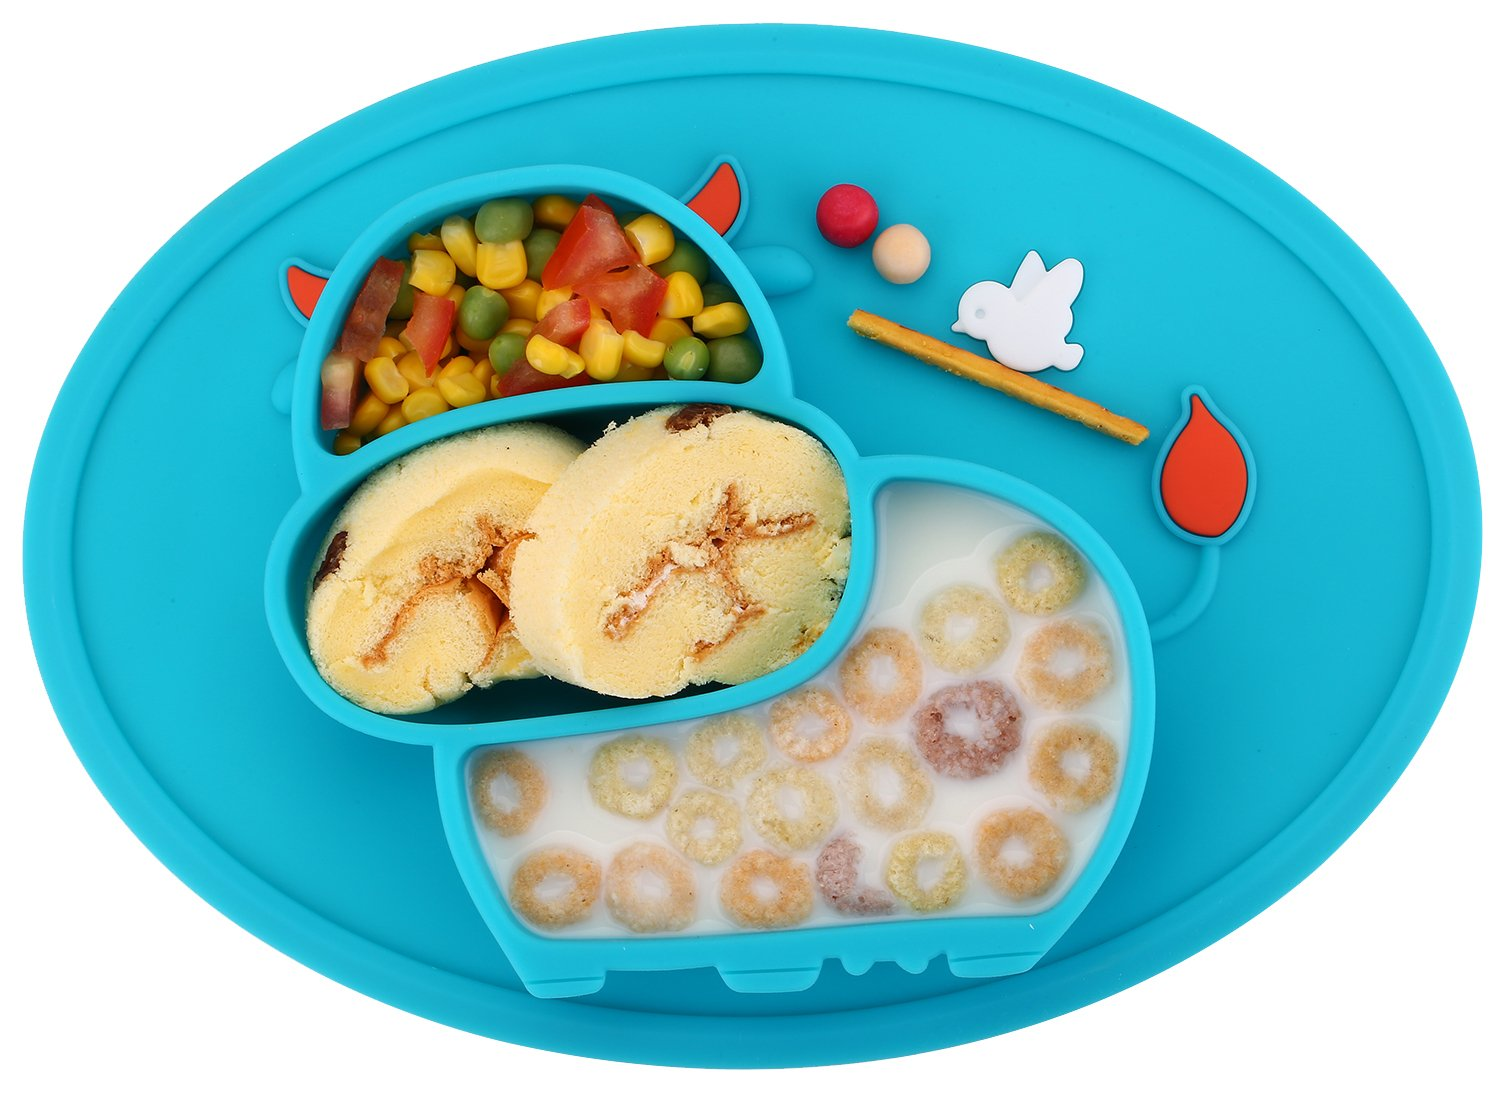 Qshare Toddler Plates, One-Piece Baby Plate for Babies Toddlers and Kids, Portable BPA-Free FDA Approved Strong Suction Plates for Toddlers, Dishwasher and Microwave Safe Silicone Placemat 11x8x1 Inch (Blue-Cow, Little-Cow)